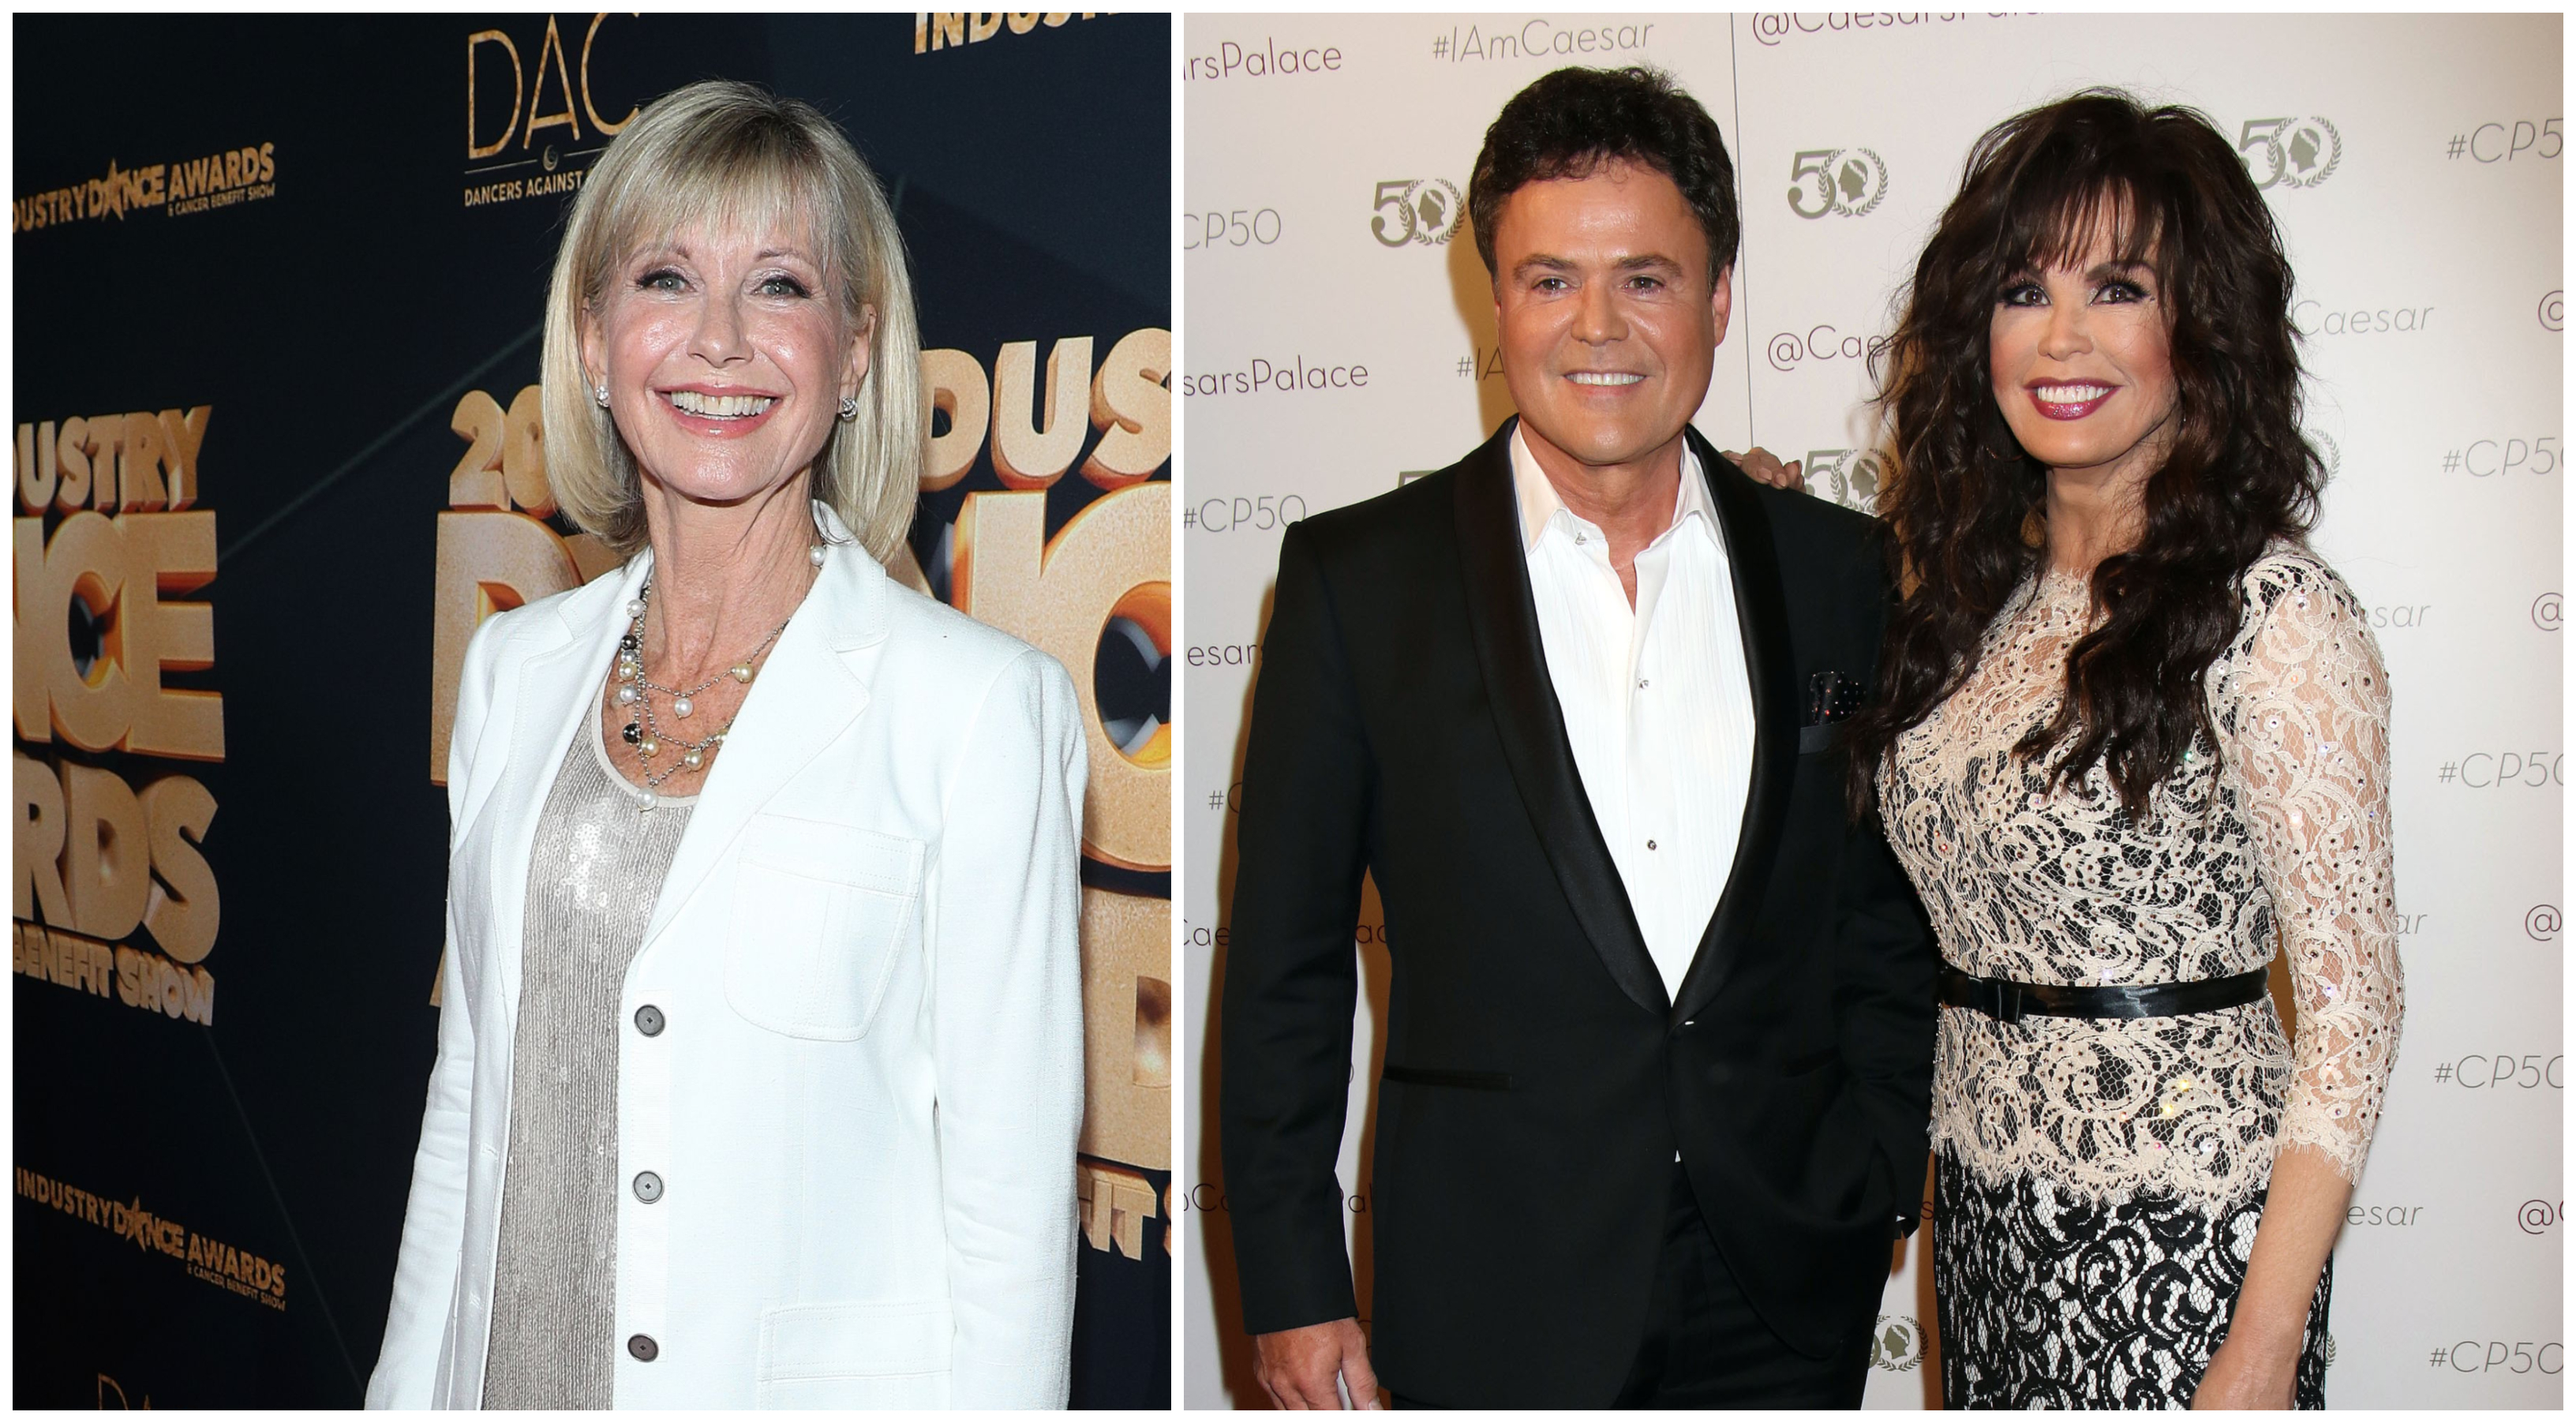 Olivia Newton-John and Husband John Attend the 'Donny & Marie' Show in Las Vegas